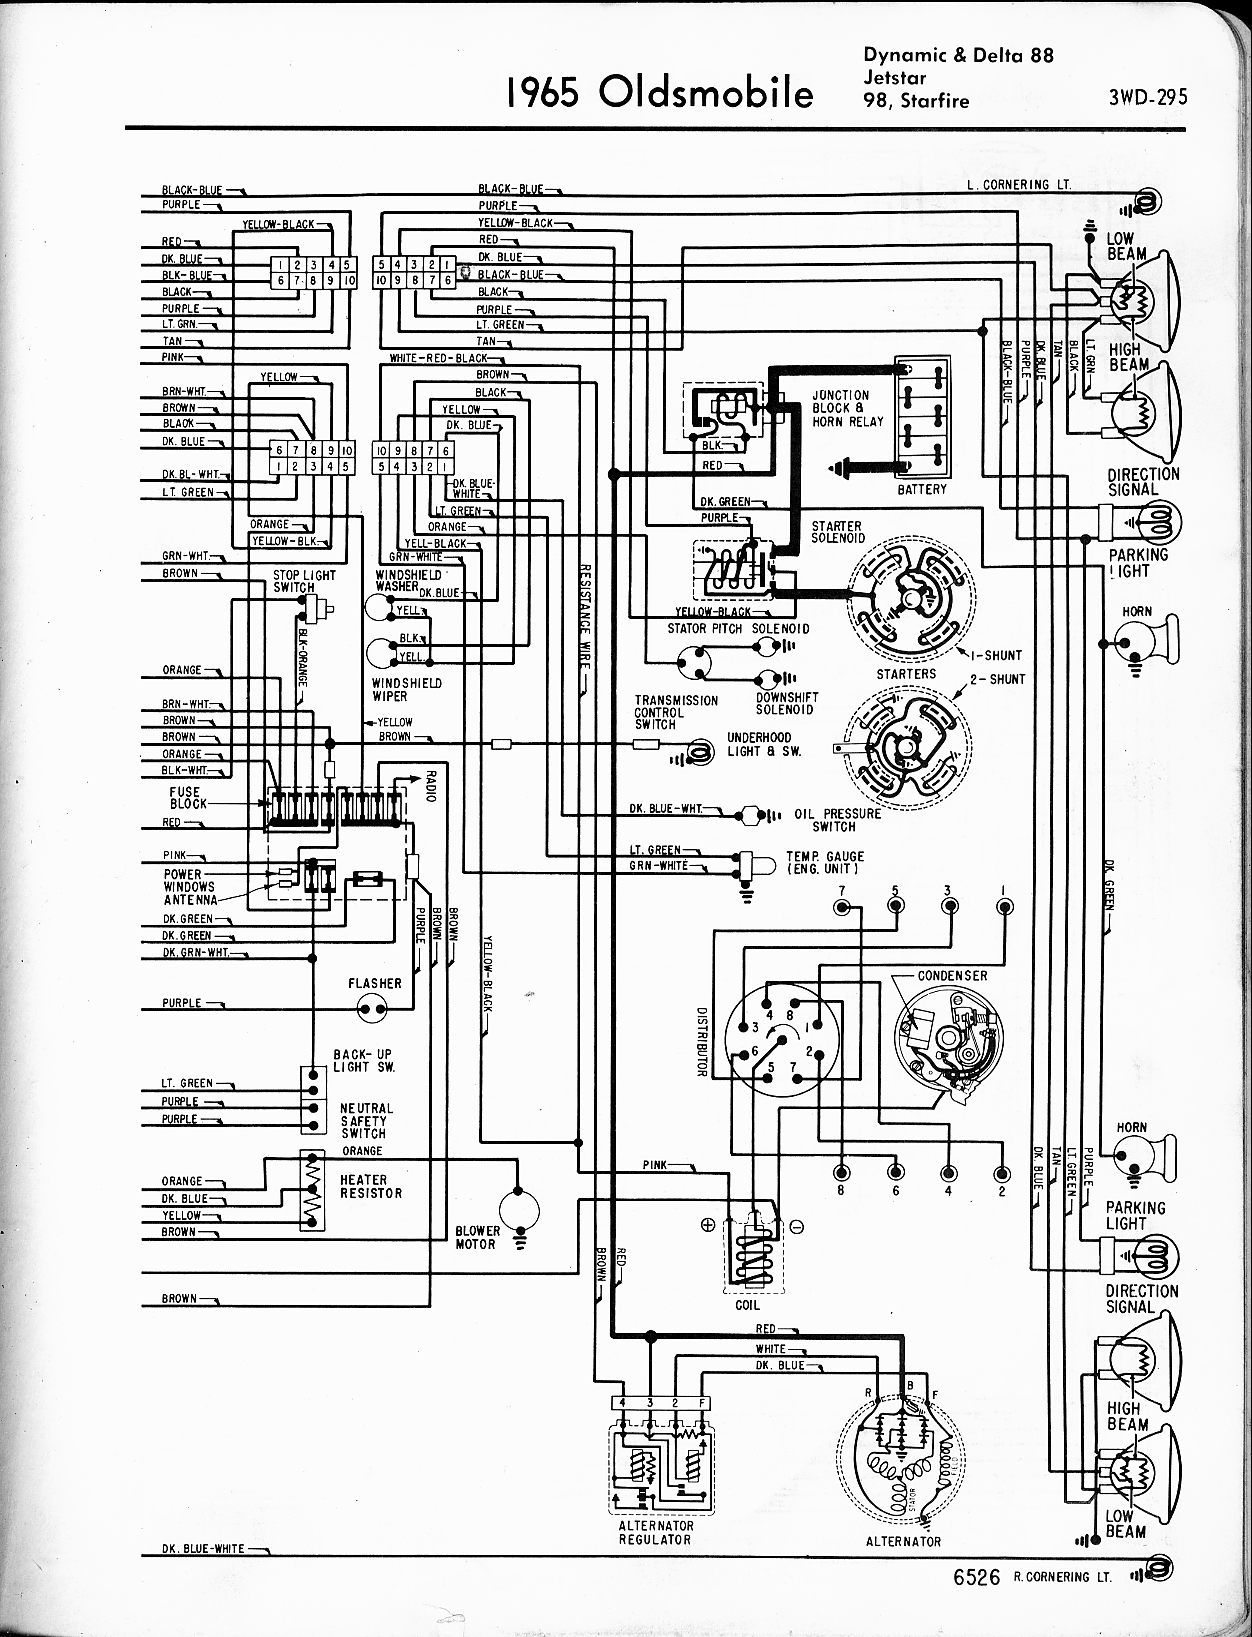 MWire5765 295?resize=665%2C869 1970 chevelle wiring harness diagram wiring diagram,70 Chevelle Wiring Harness Diagram